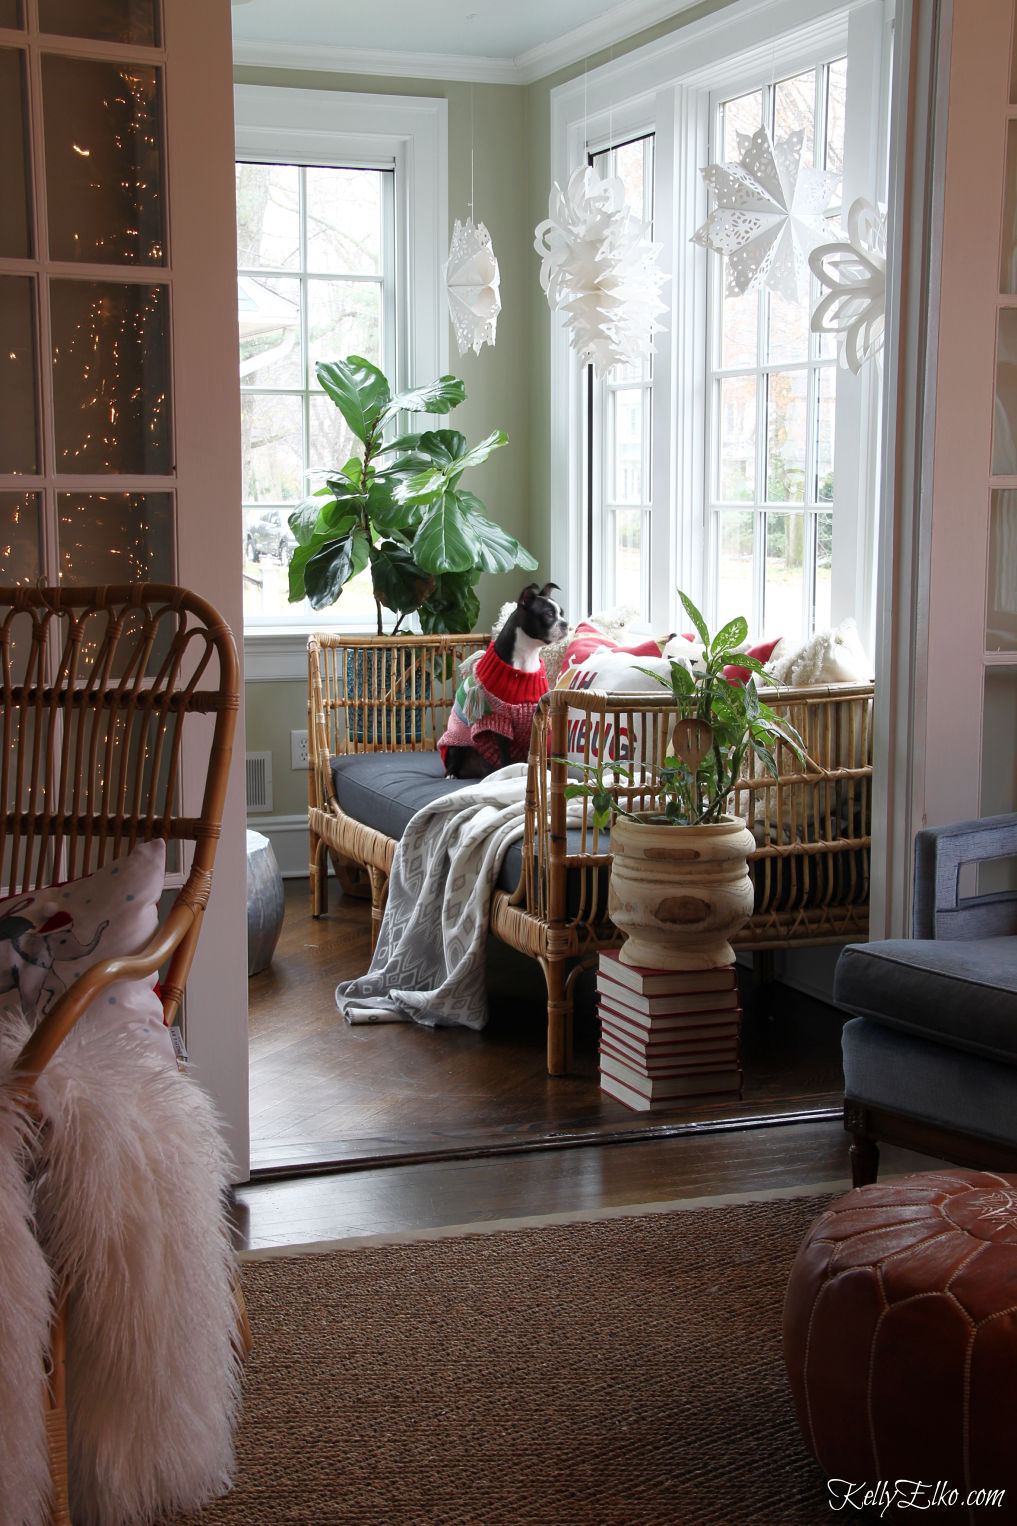 Love this sunroom decked out for Christmas with a boho rattan daybed covered in colorful pillows and cute paper snowflakes in the window kellyelko.com #bohodecor #bohodecorating #rattan #daybeds #sunroom #sunroomdecor #plantlady #houseplants #interiordecorate #interiordecor #christmas #christmasdecor #bostonterrier